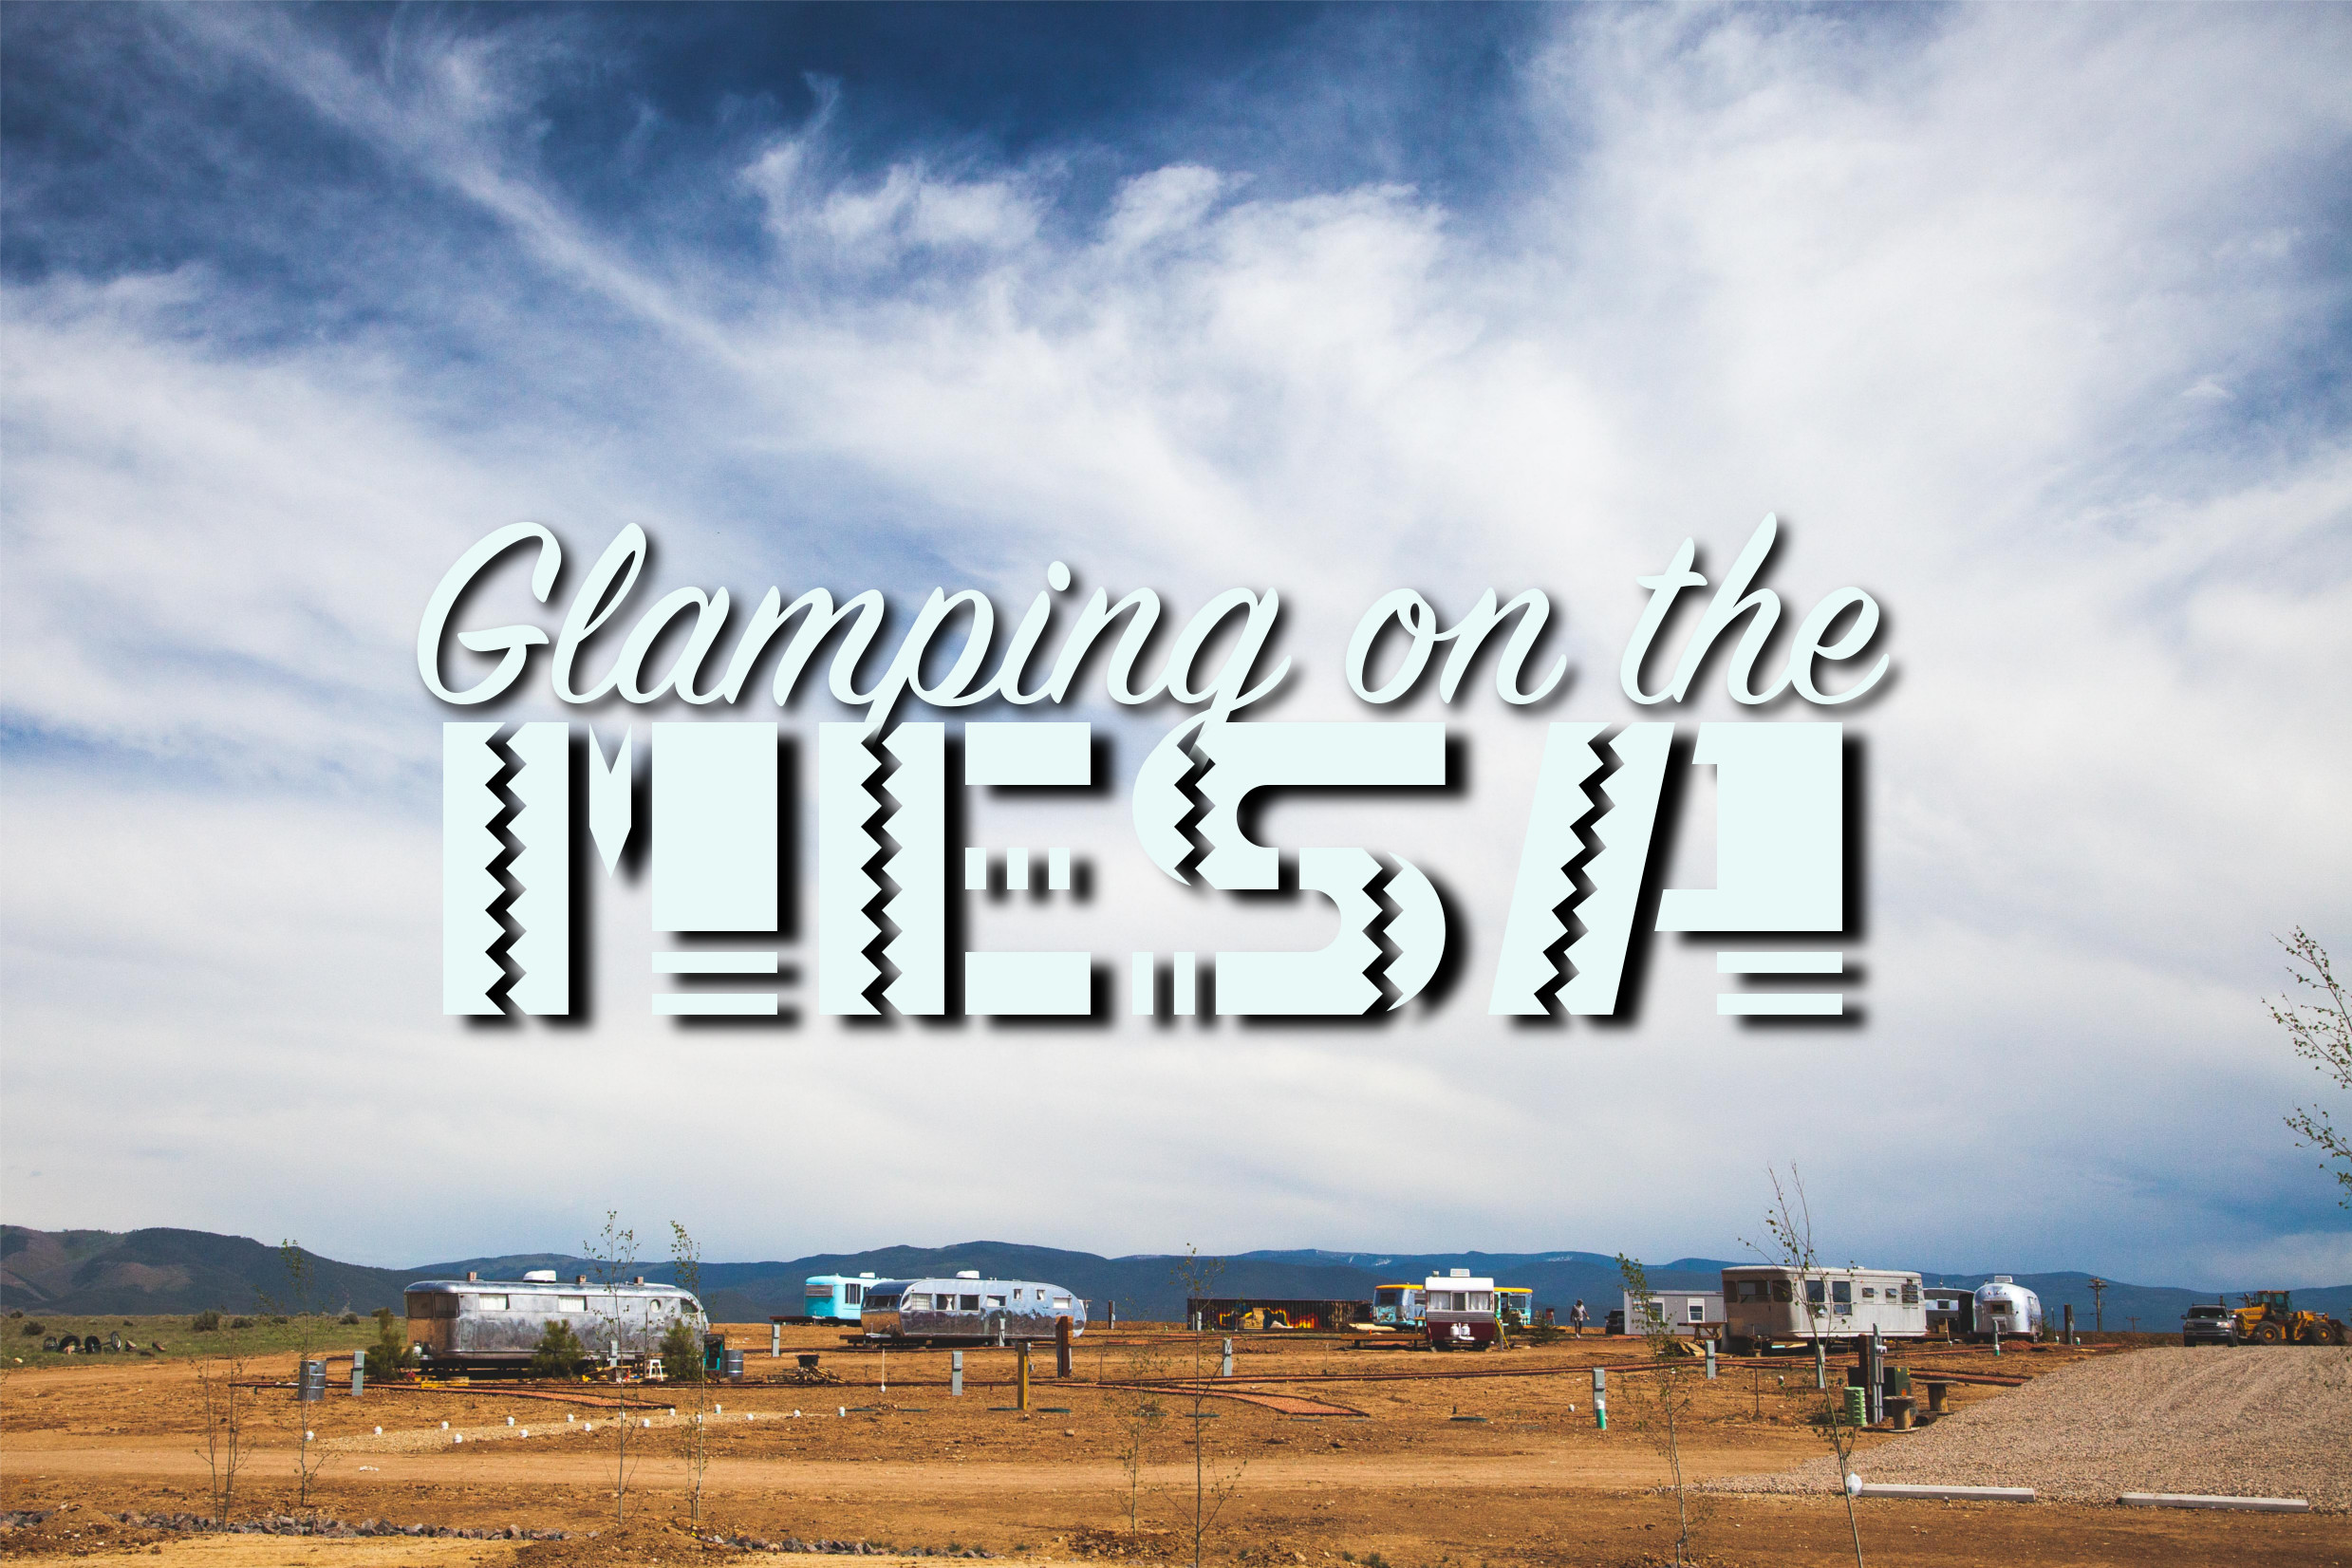 Glamping on the Mesa: Hotel Luna Mystica- Taos, NM